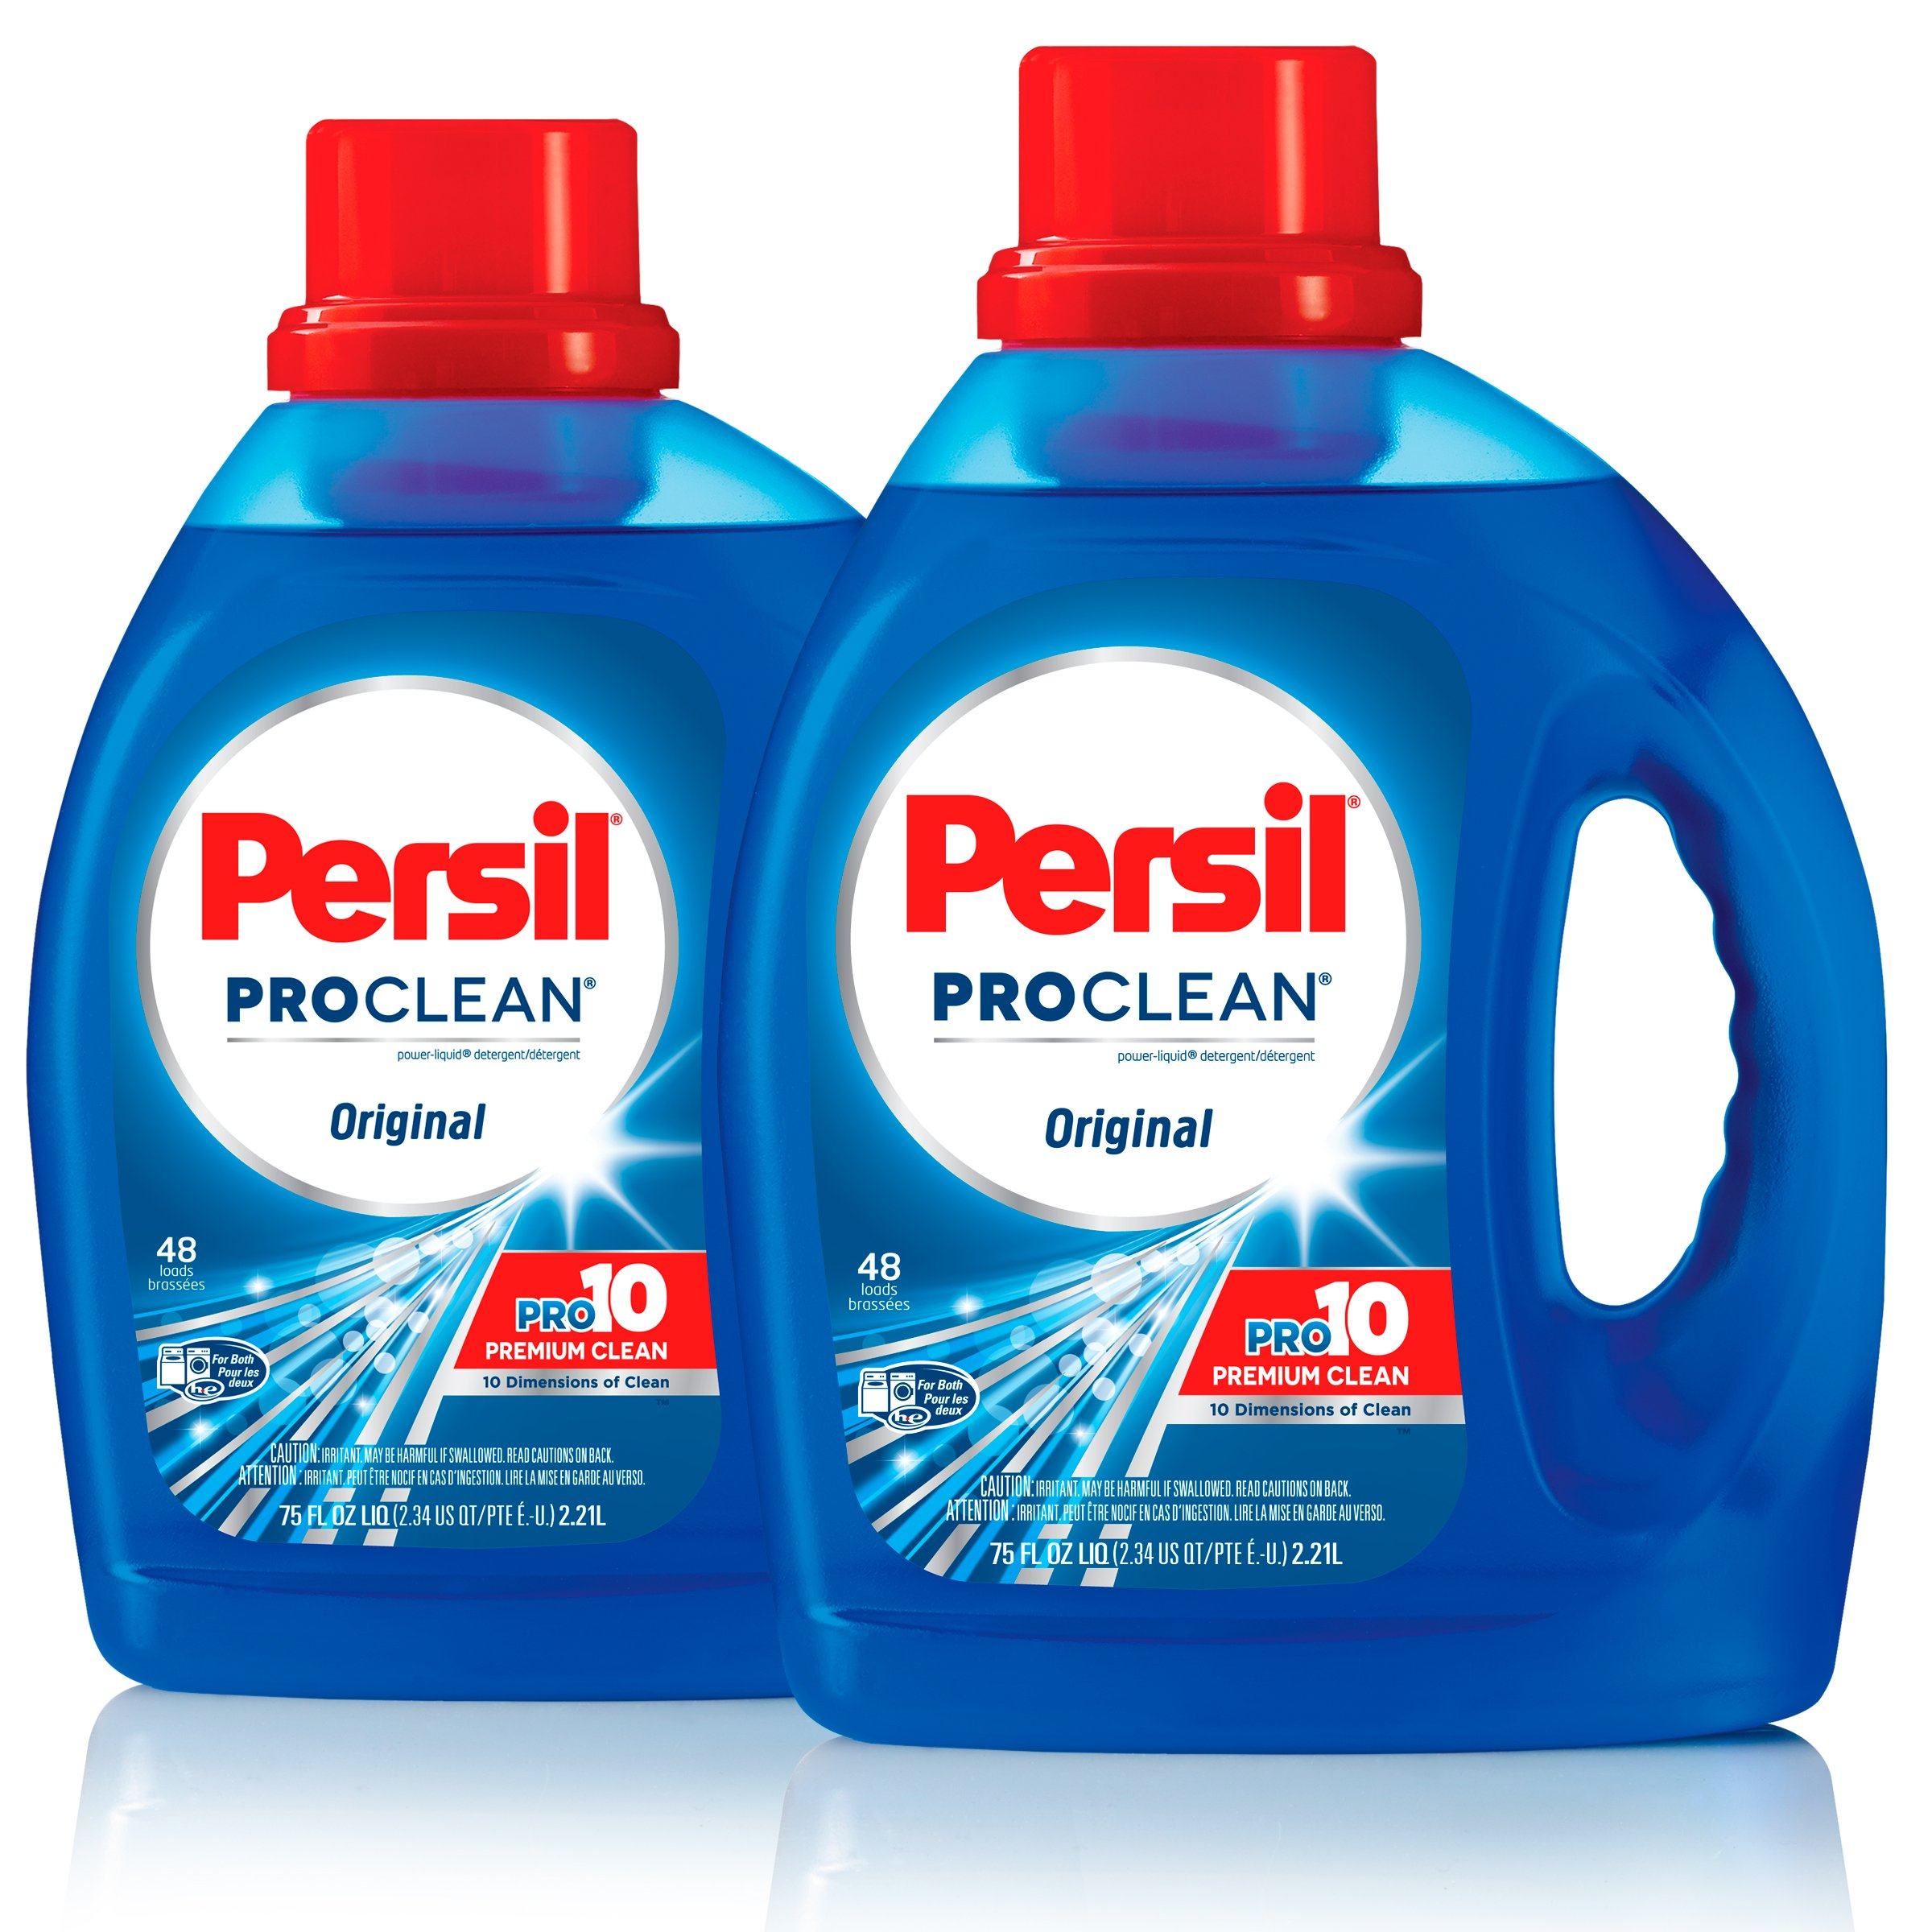 Persil ProClean Liquid Laundry Detergent, Original, 75 Fluid Ounces, 96 Total Loads (Pack of 2) by Persil